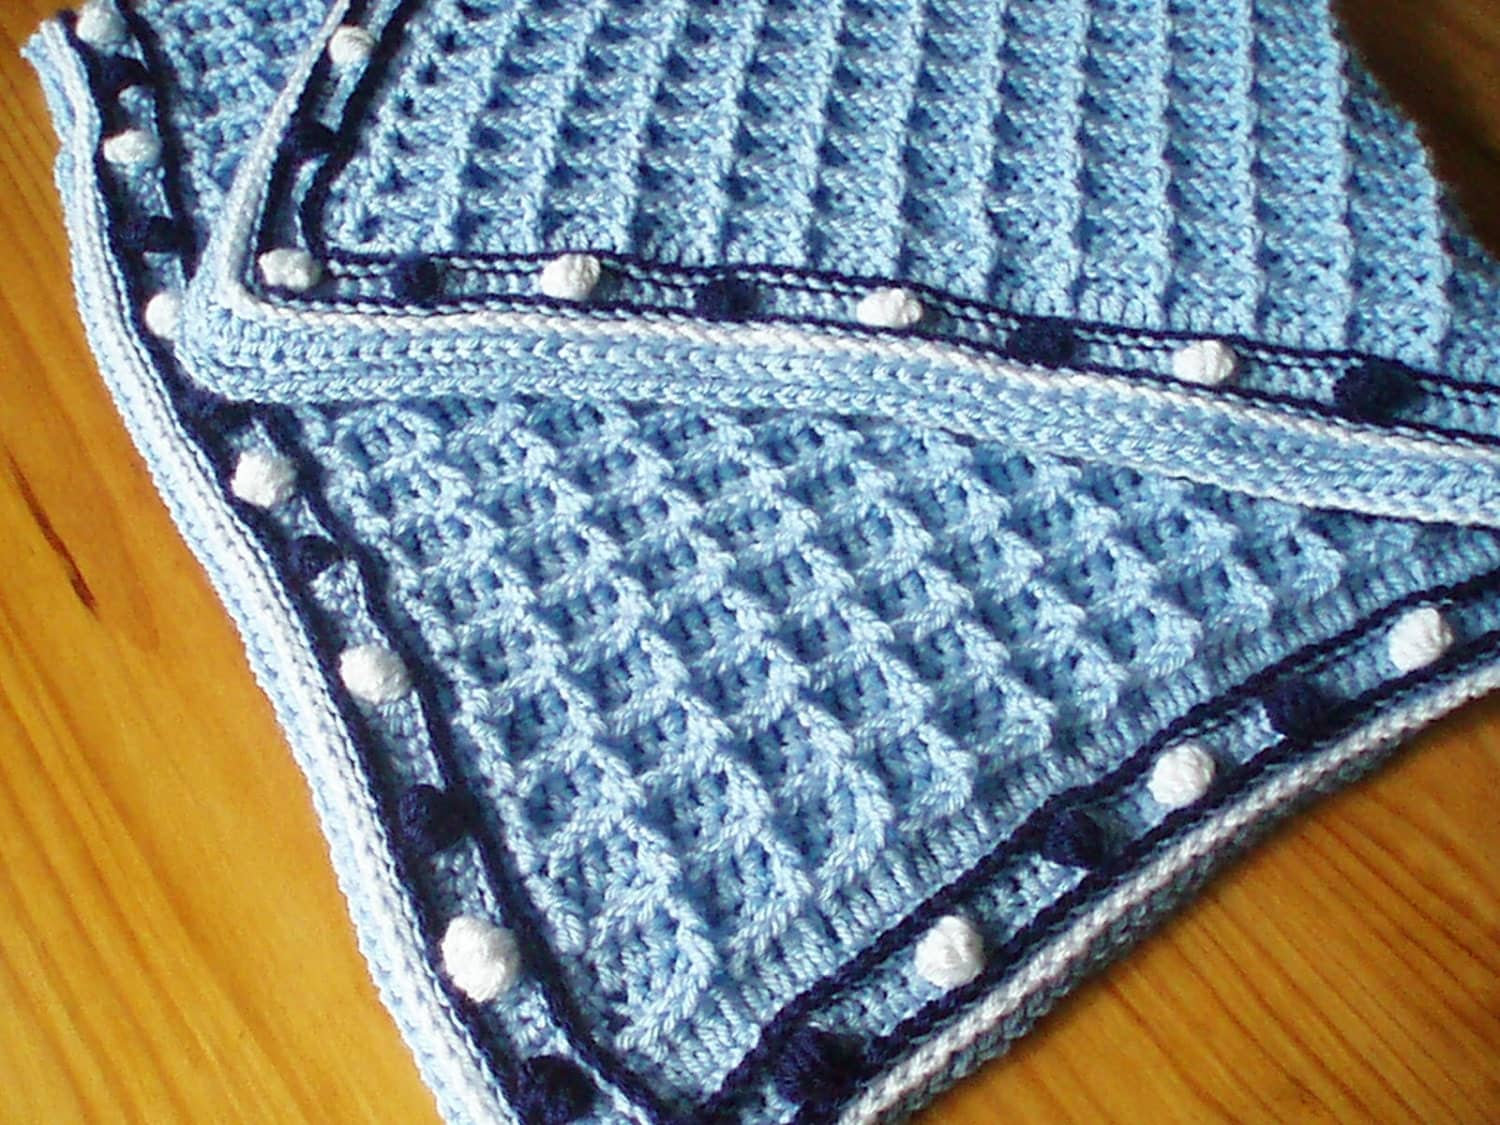 Abc Baby Blanket Crochet Pattern Crochet Pattern For Baby Blanket In Waffle Weave With Bobble